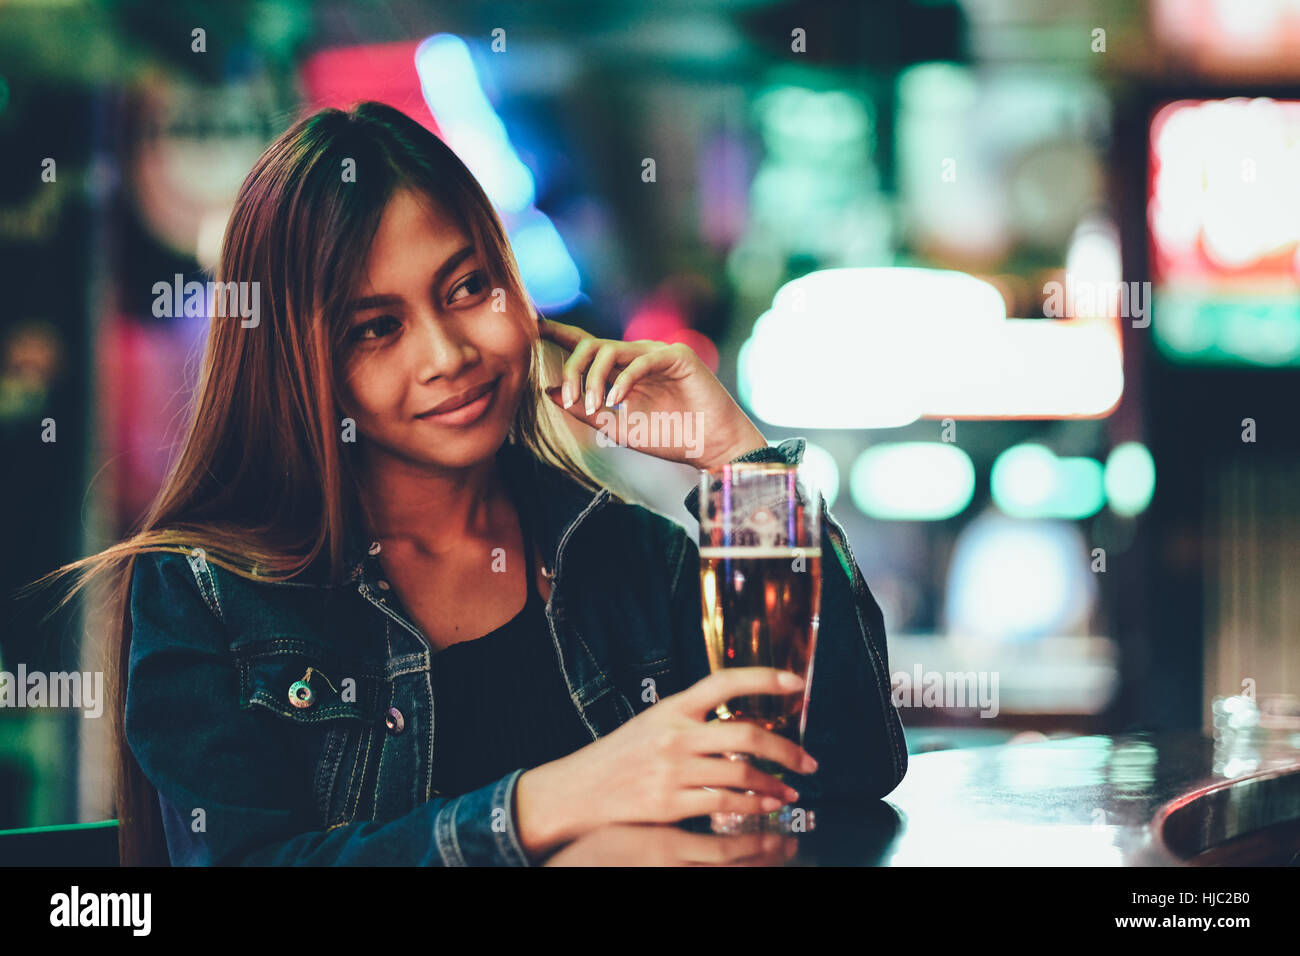 La vie nocturne, des profils girl en attente dans le bar bear Photo Stock